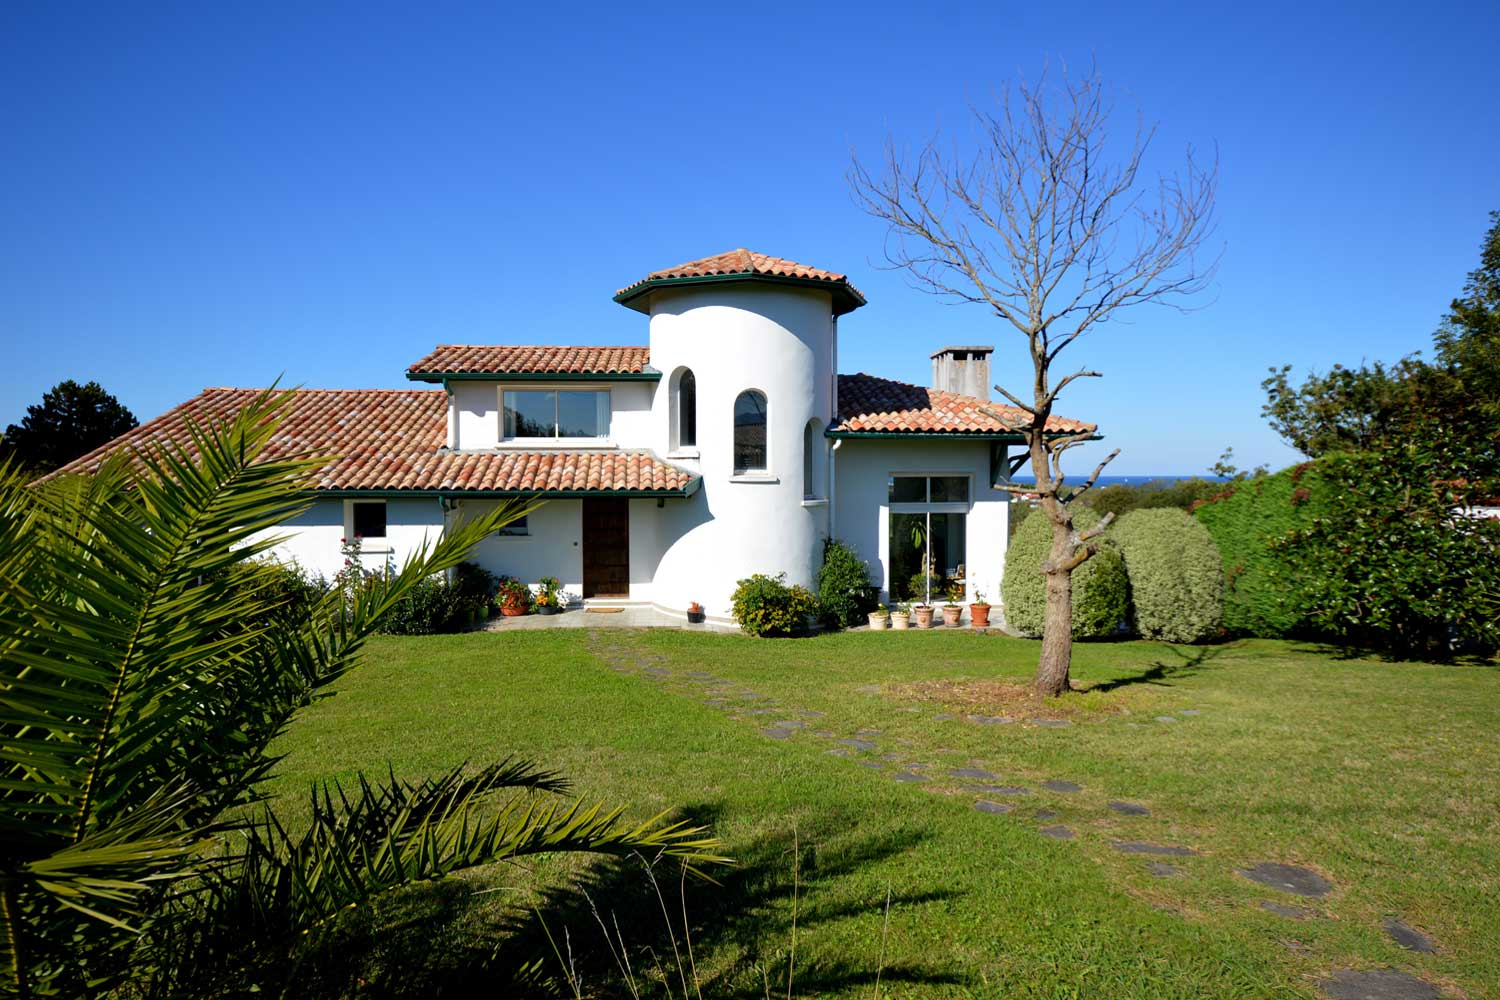 <b>Guethary, Aquitaine, France</b><br/><i>5 Bedrooms, 2,798 sq. ft.</i><br/>Mediterranean villa with sea views